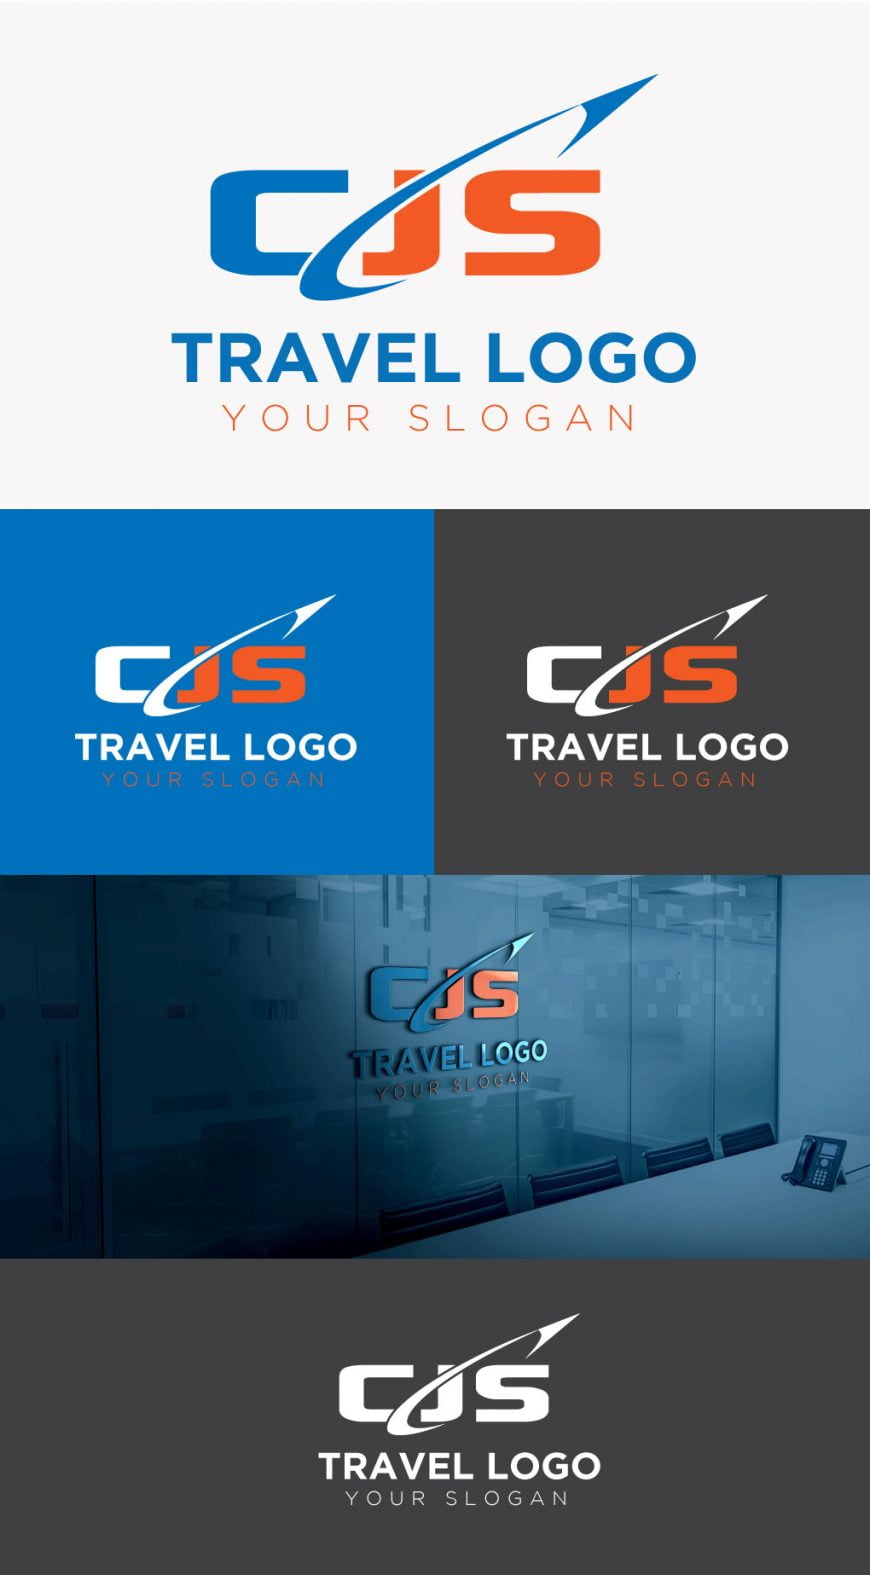 Modern-travel-logo-template